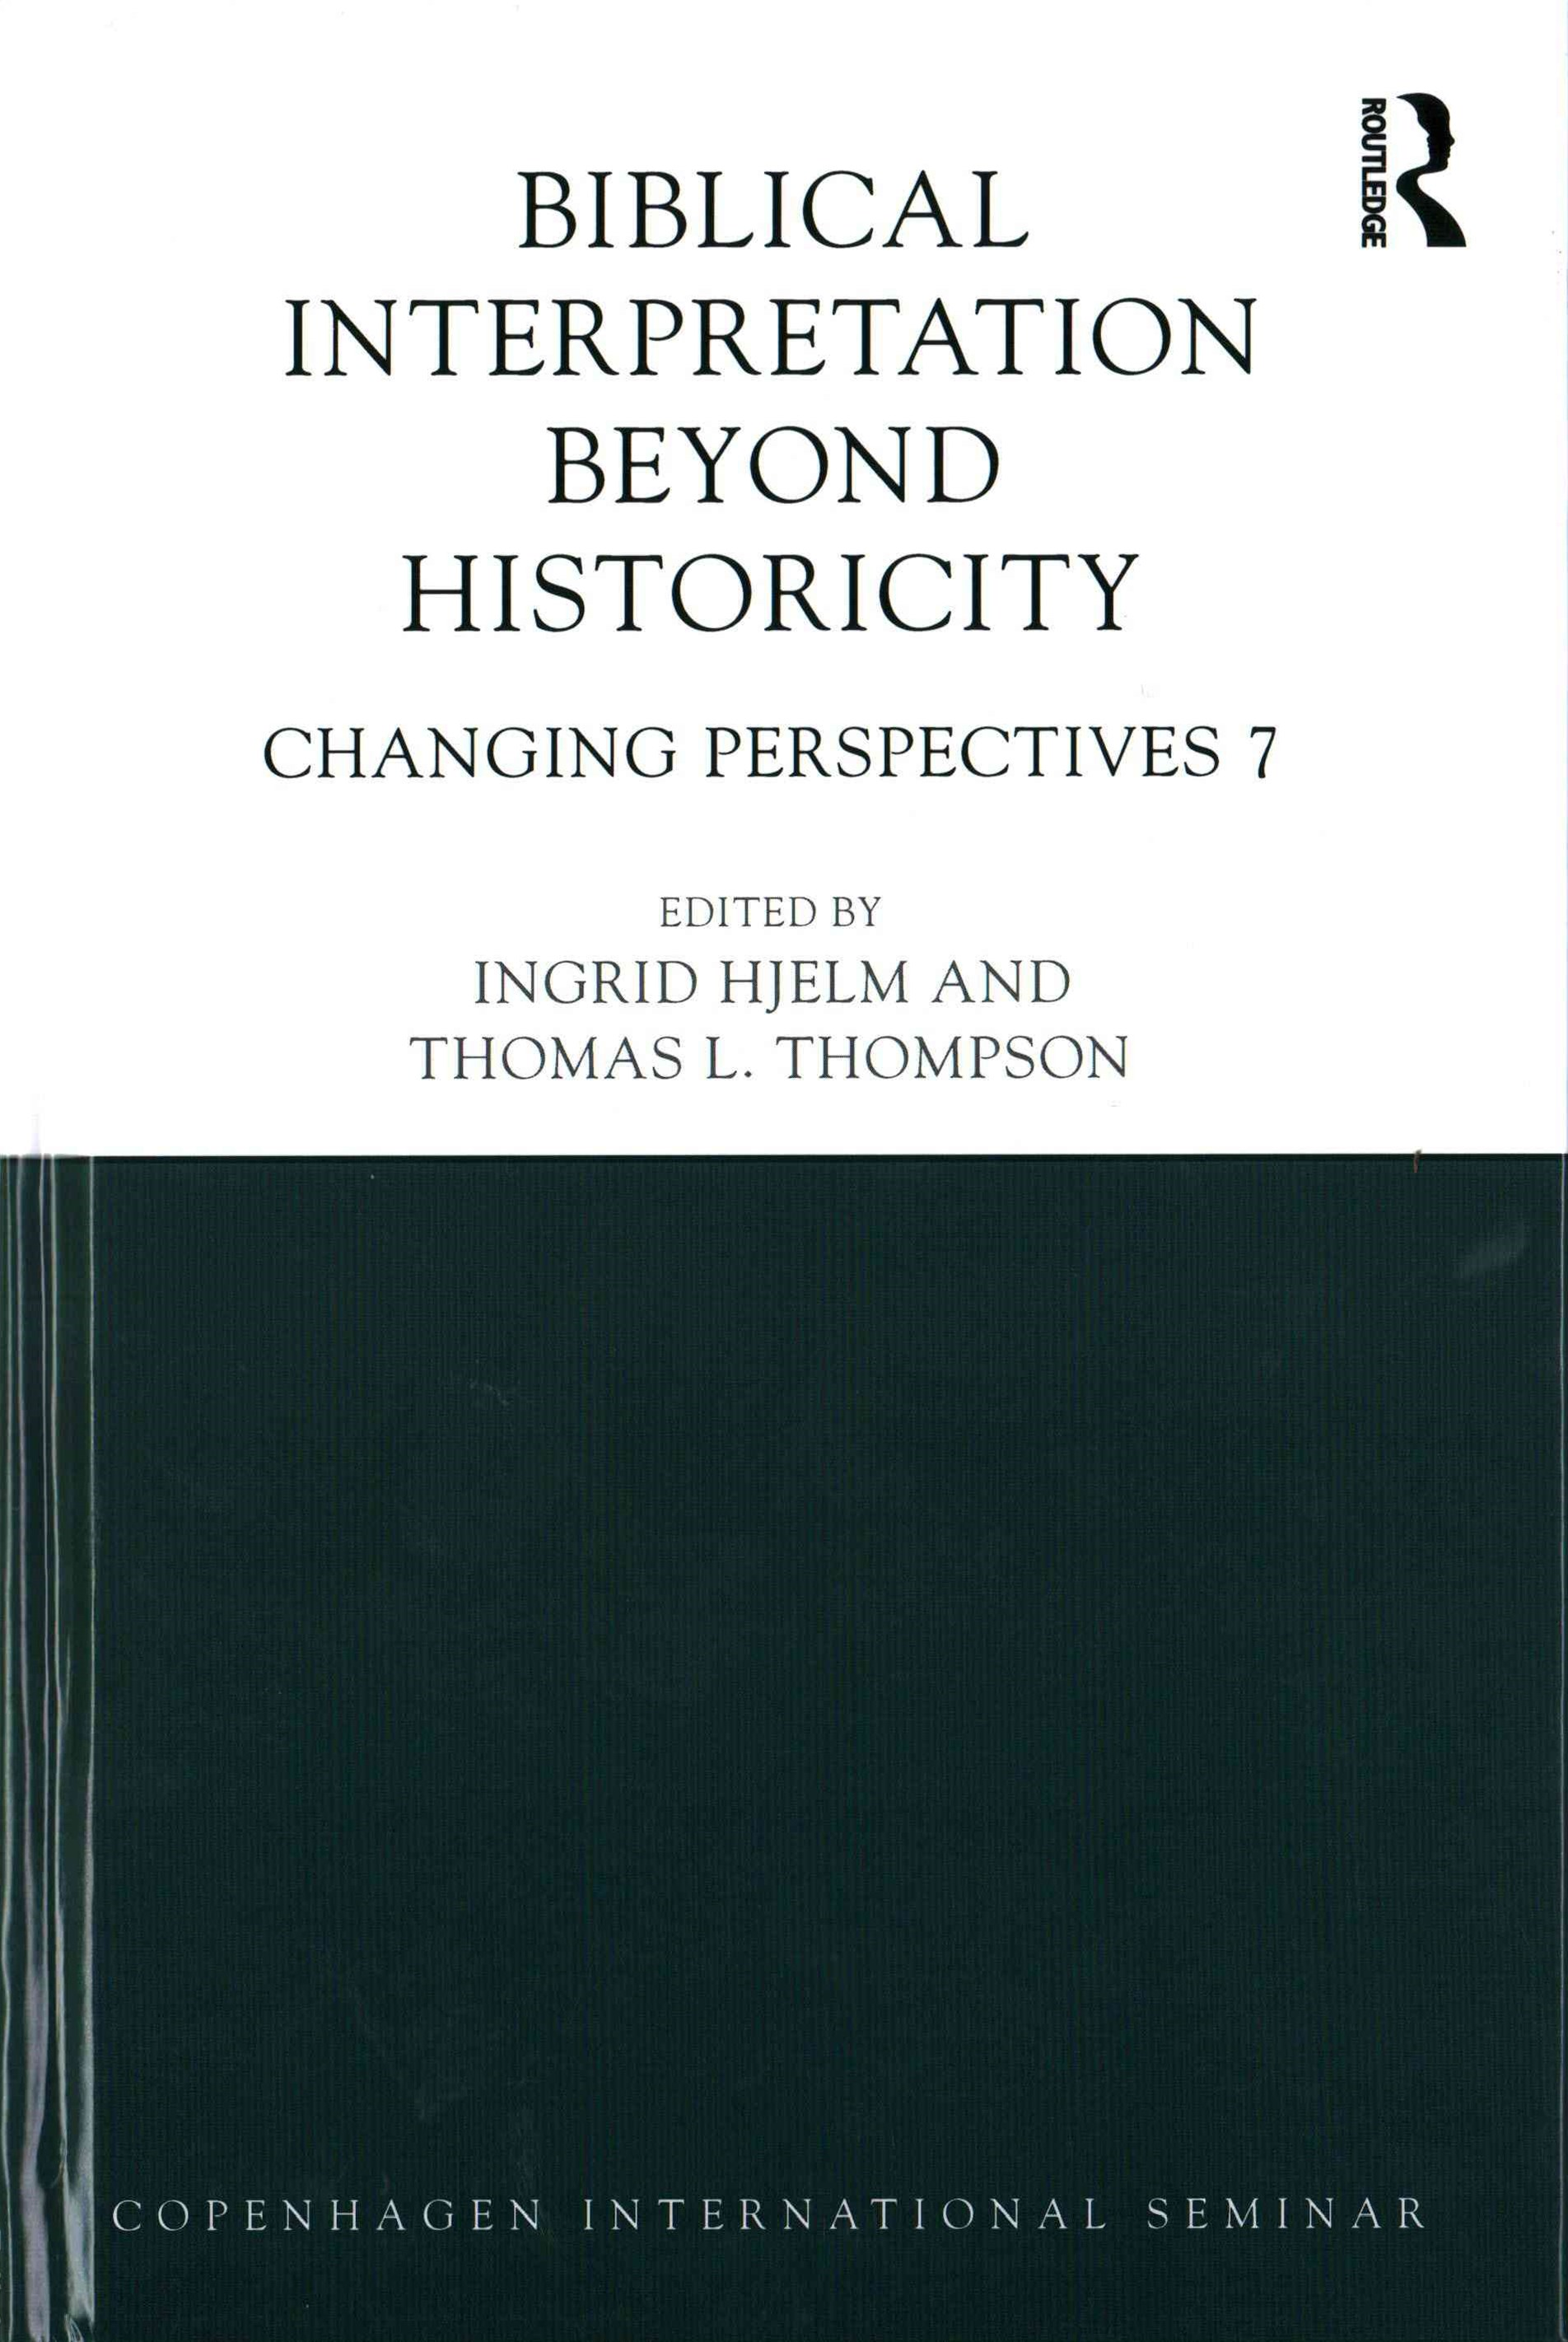 Biblical Interpretation Beyond Historicity: Changing Perspectives